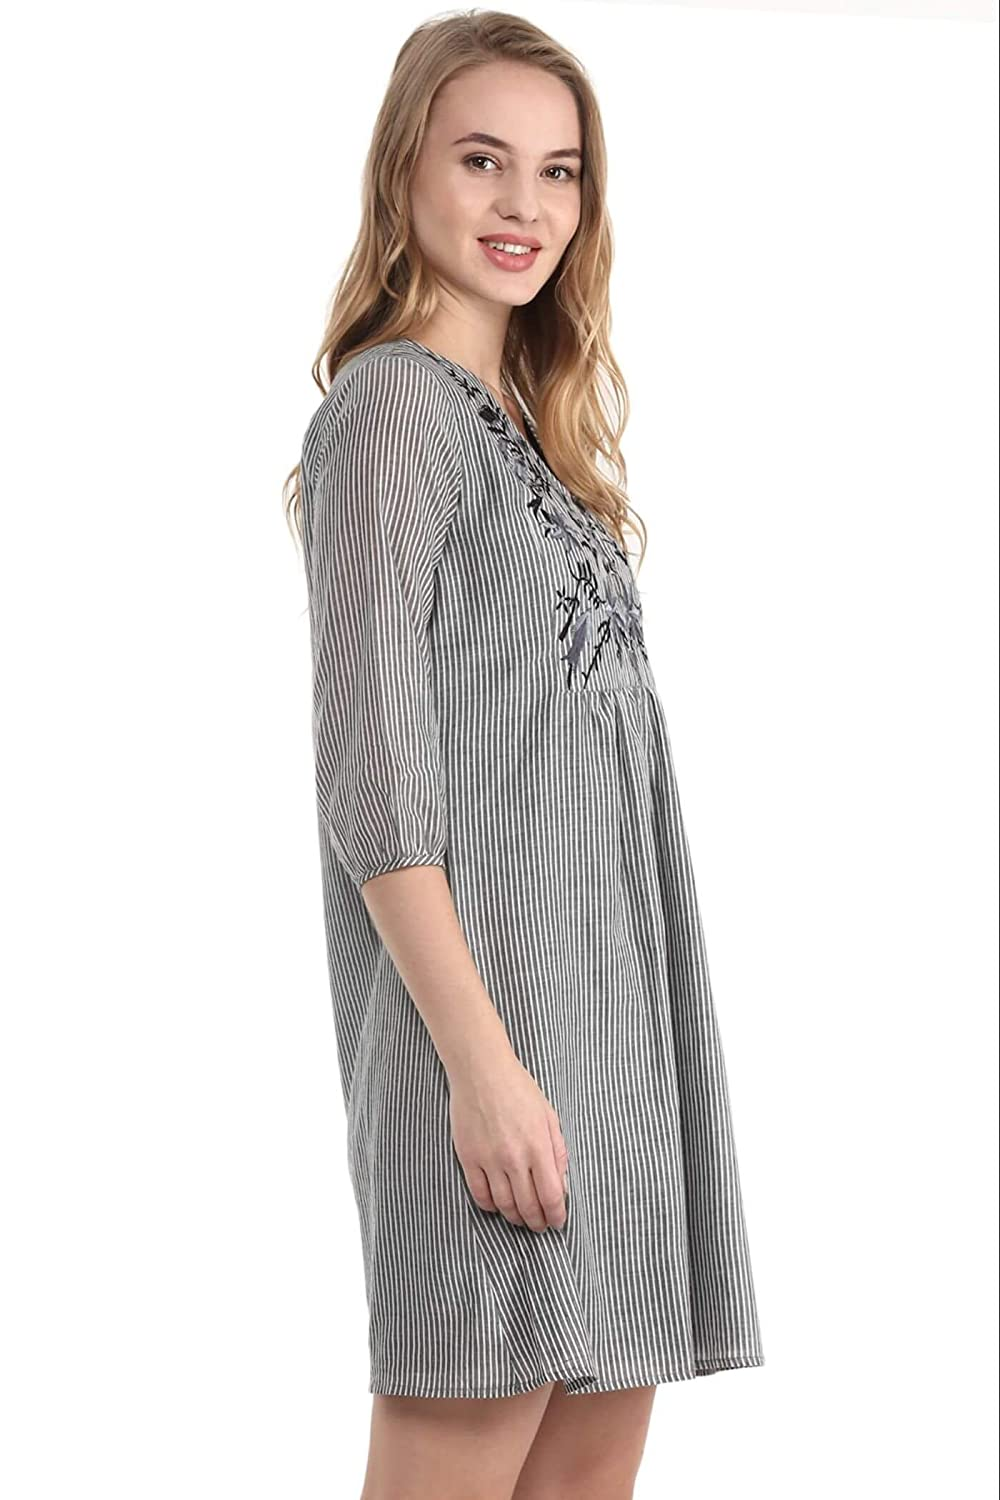 dd7d8cab179 THE VANCA Grey Striped Tunic Dress with Embroidery at Yoke: Amazon.in:  Clothing & Accessories